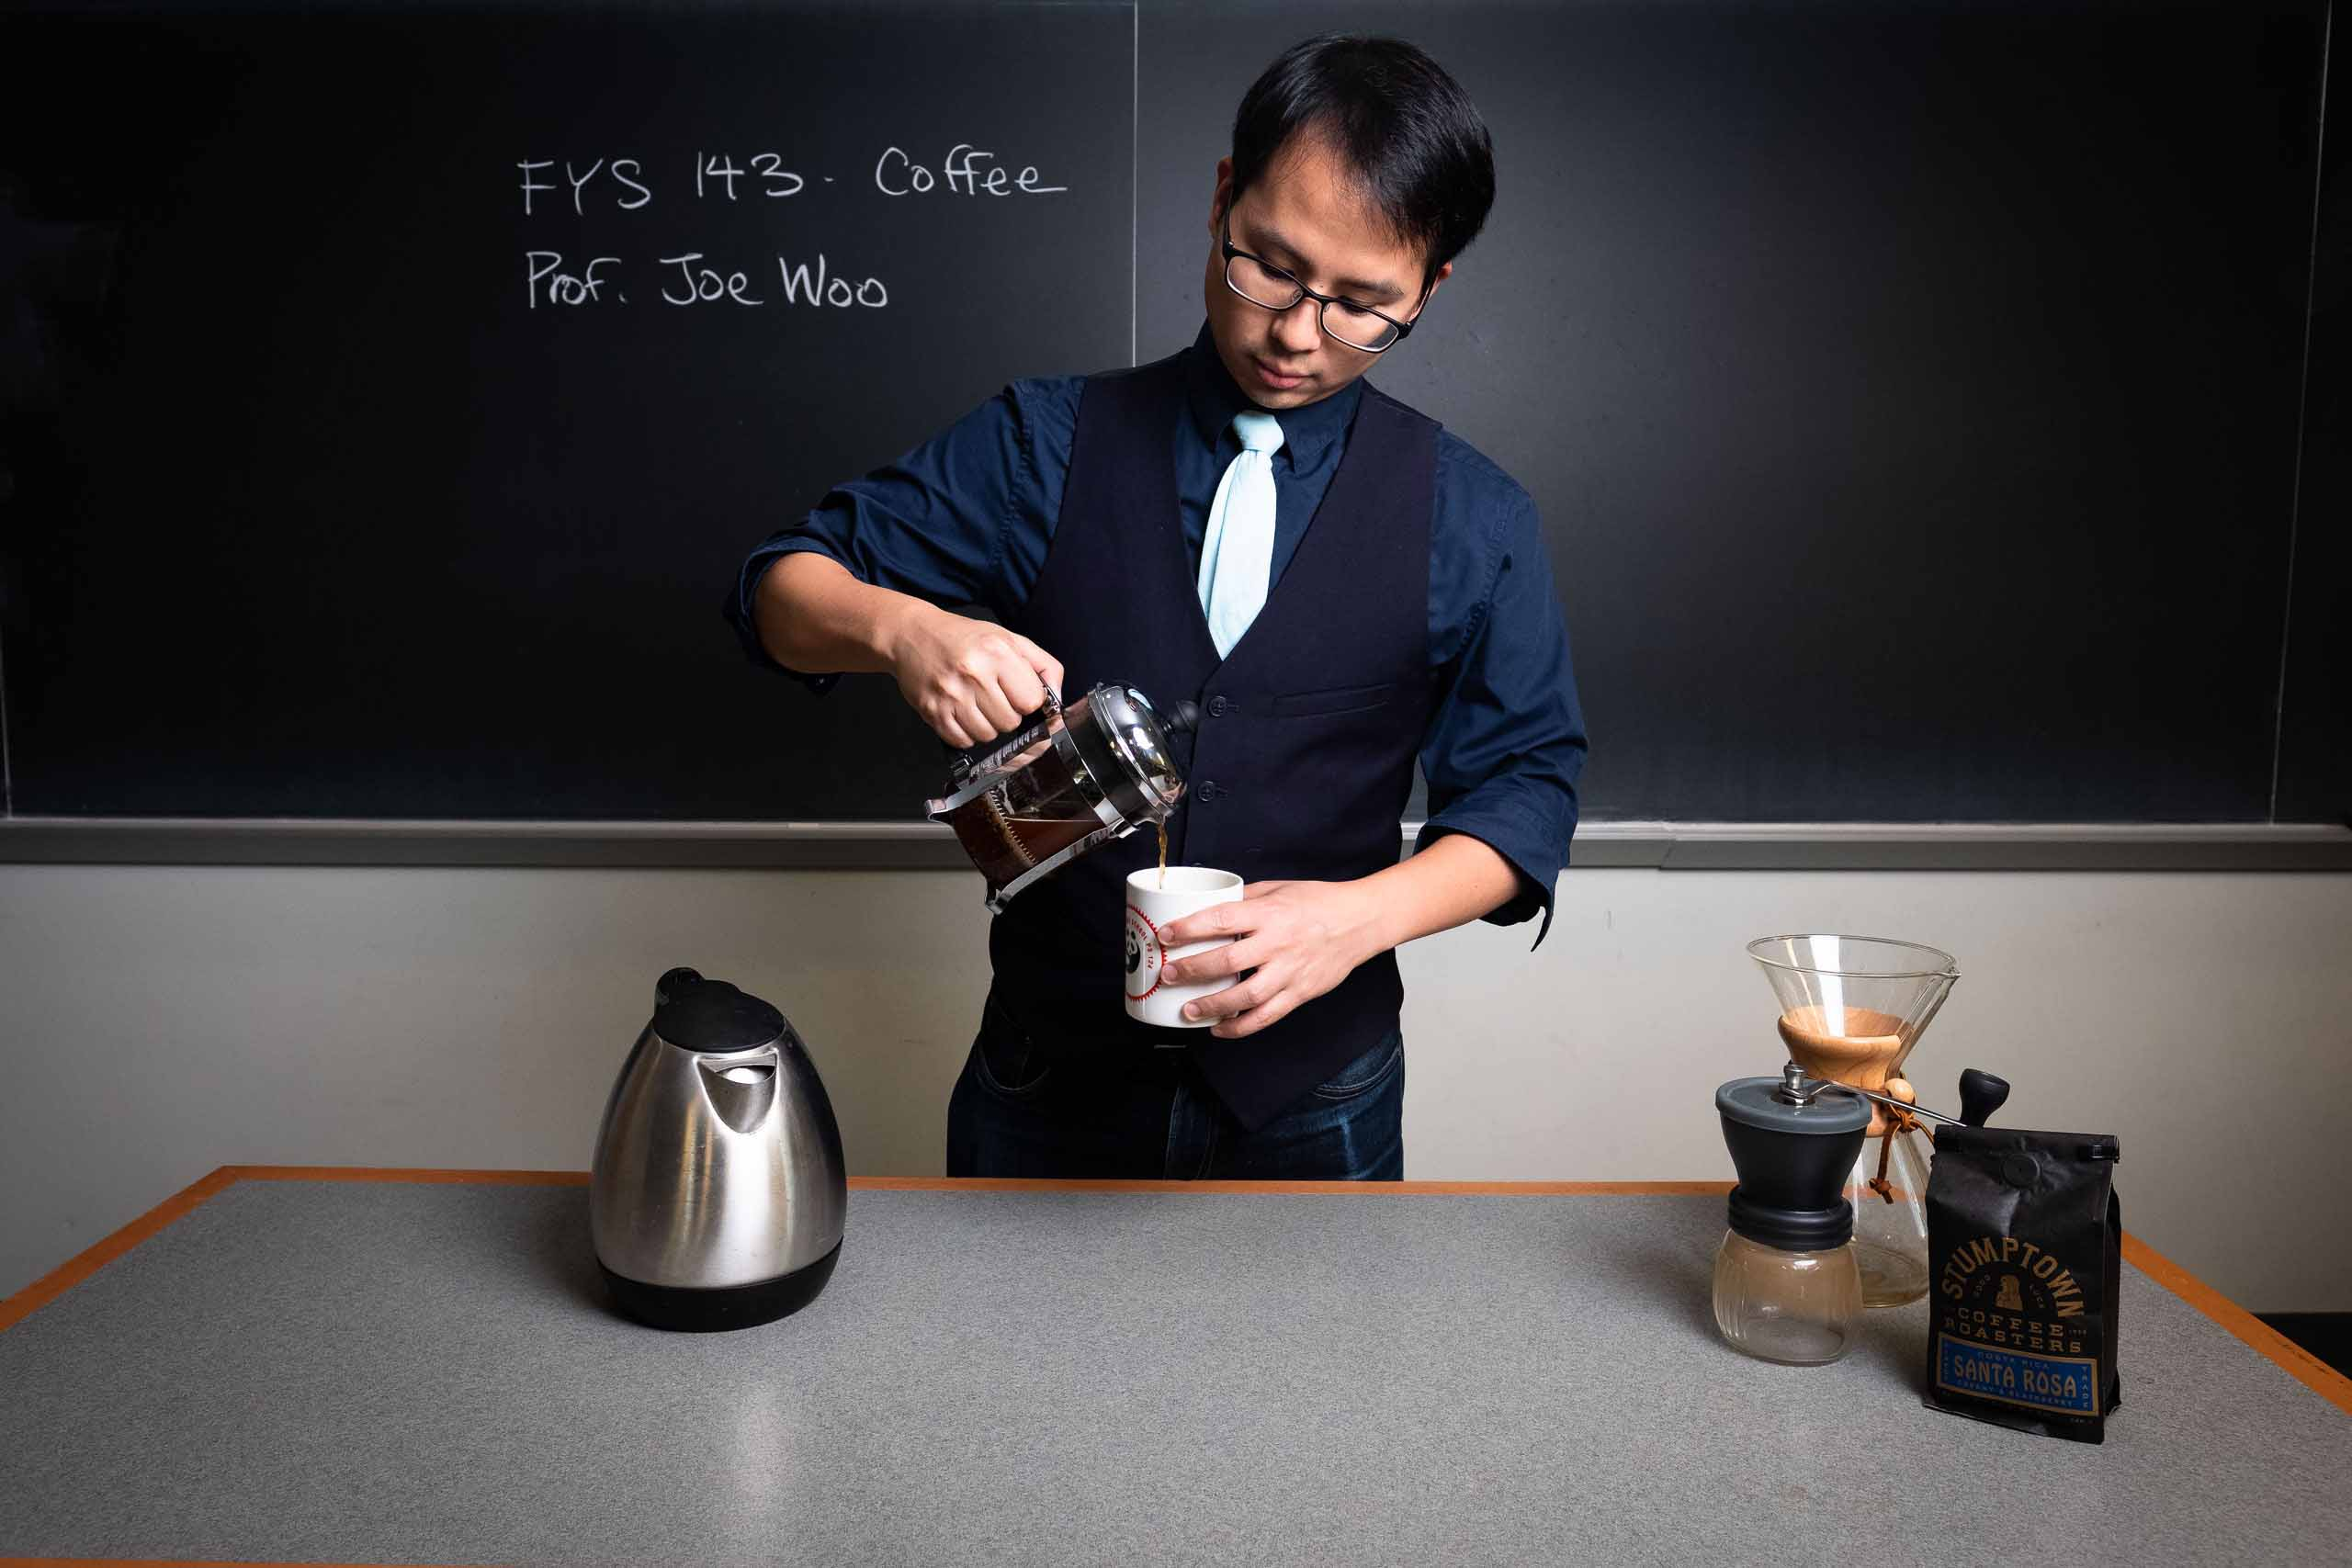 Professor Joe Woo pours a cup of coffee in his classroom.